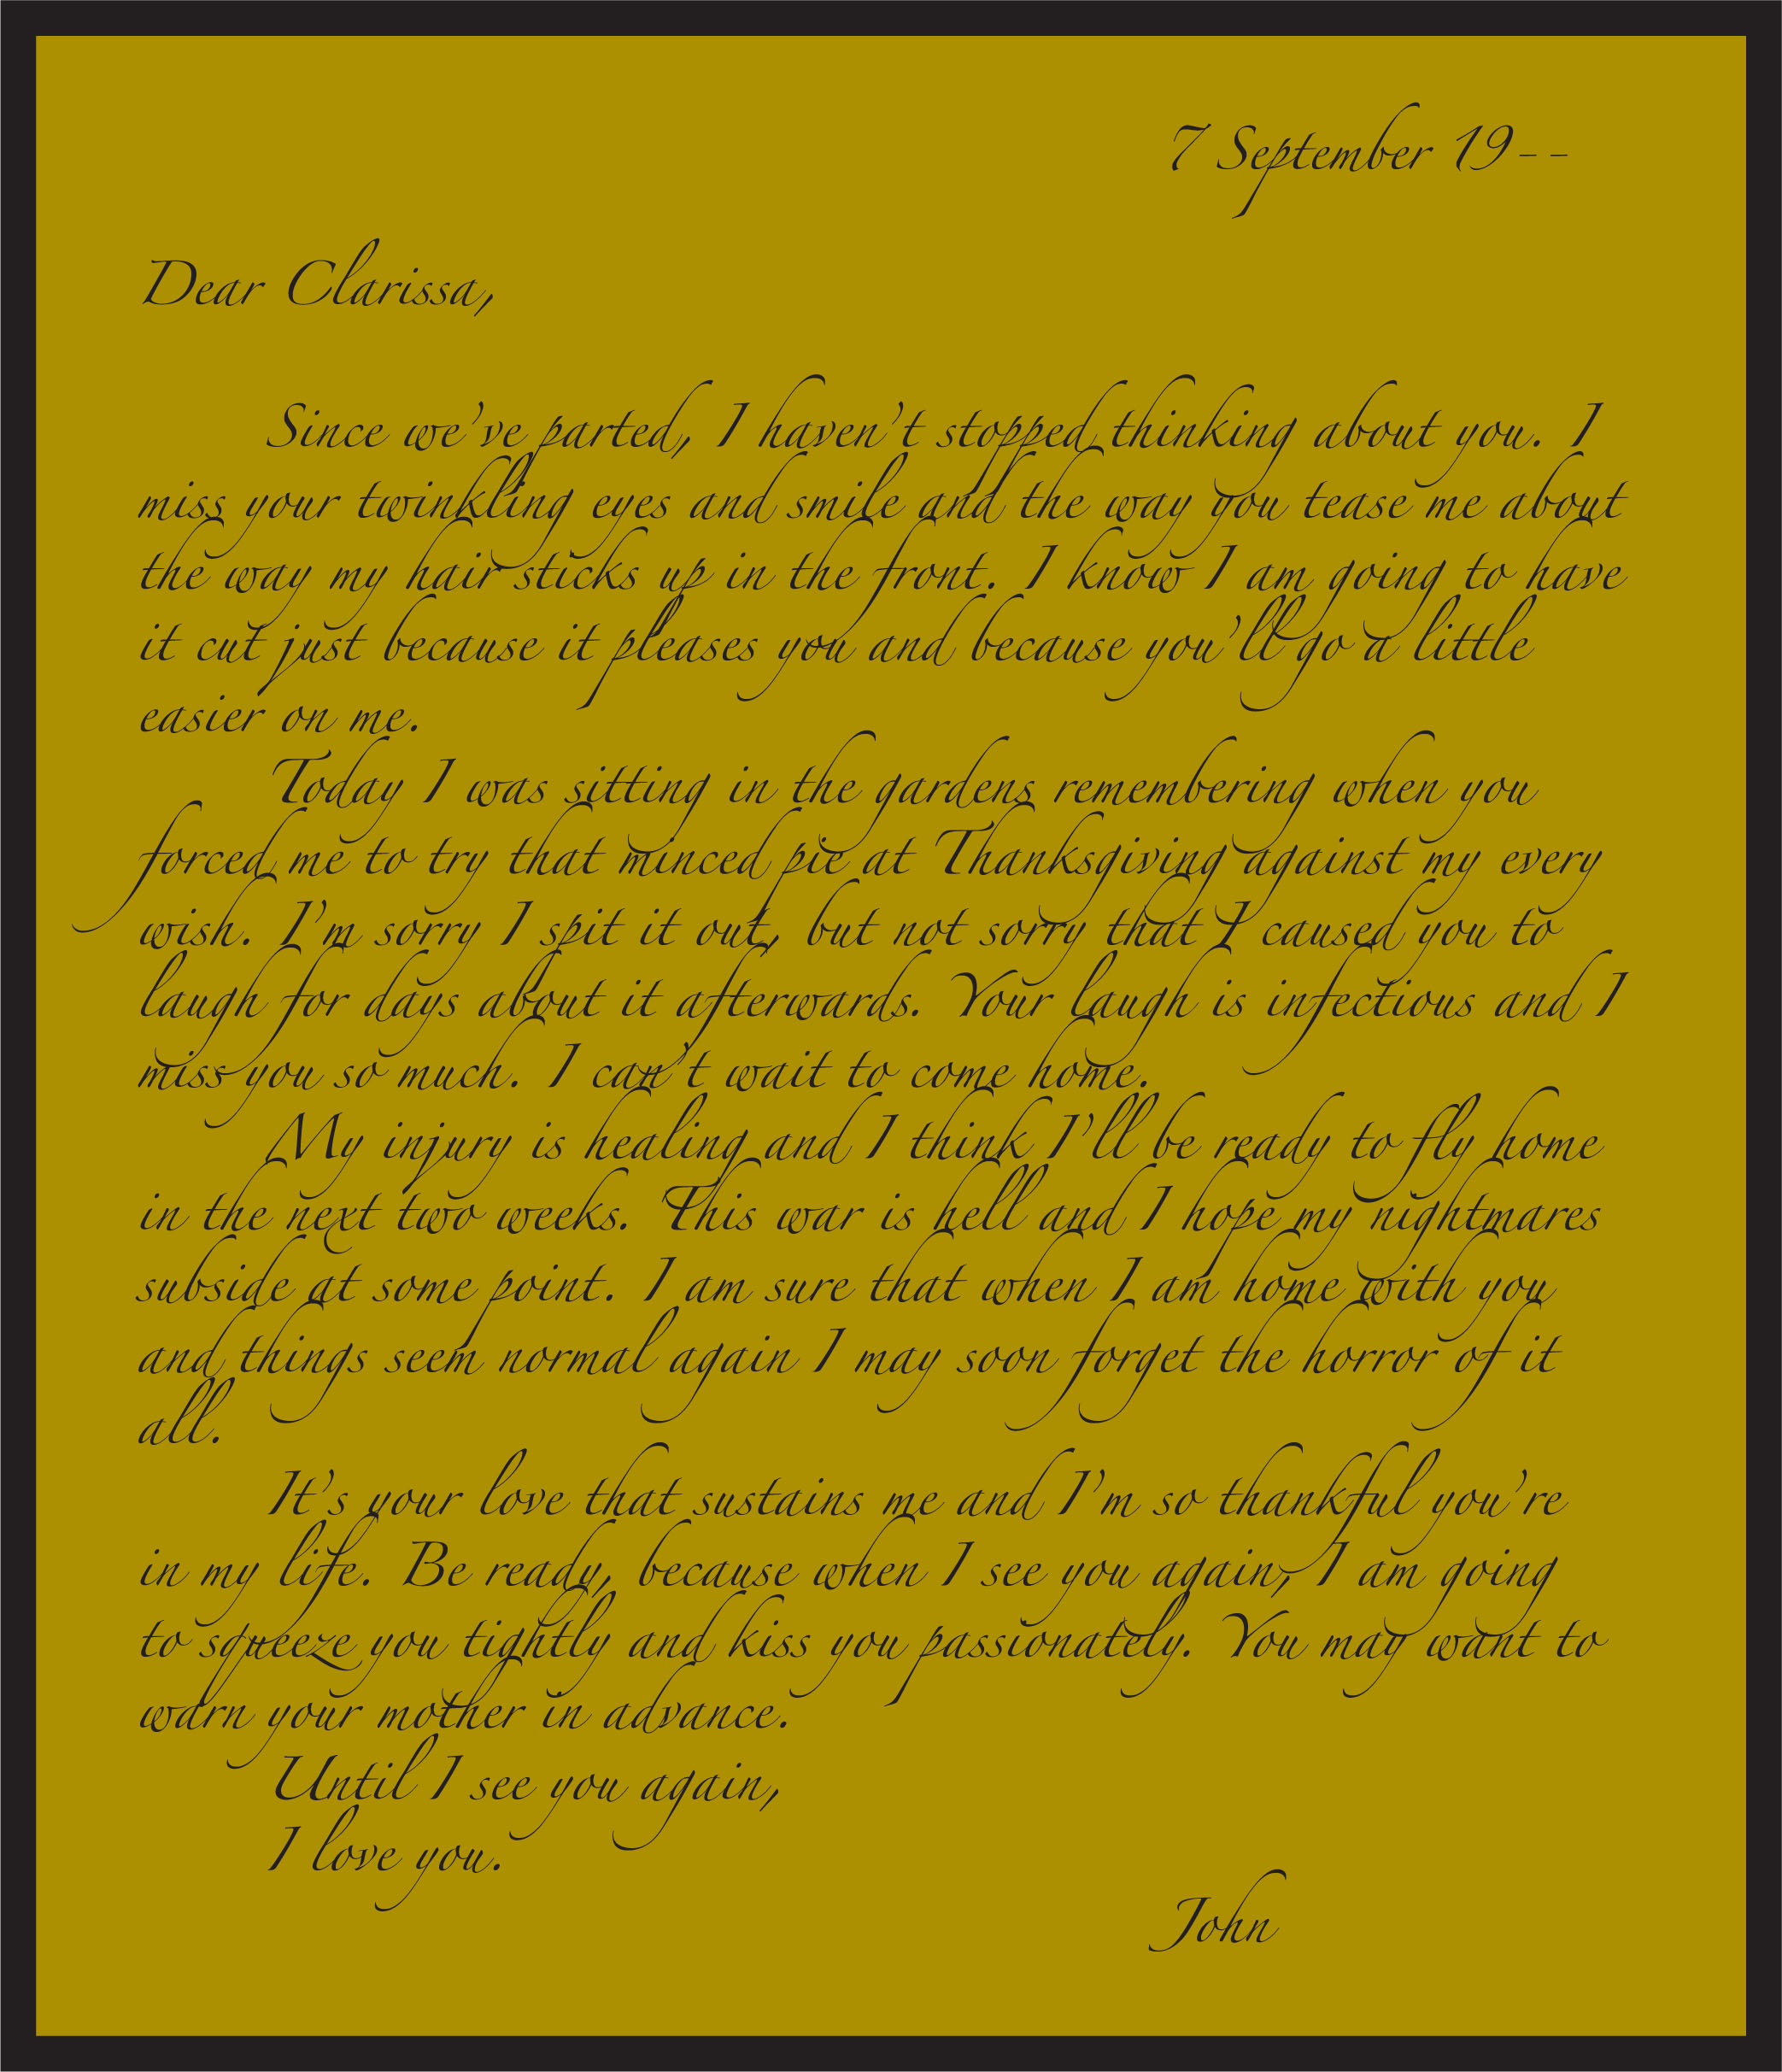 Love Letter Format In Word New Format Love Letter In Hindi New Love